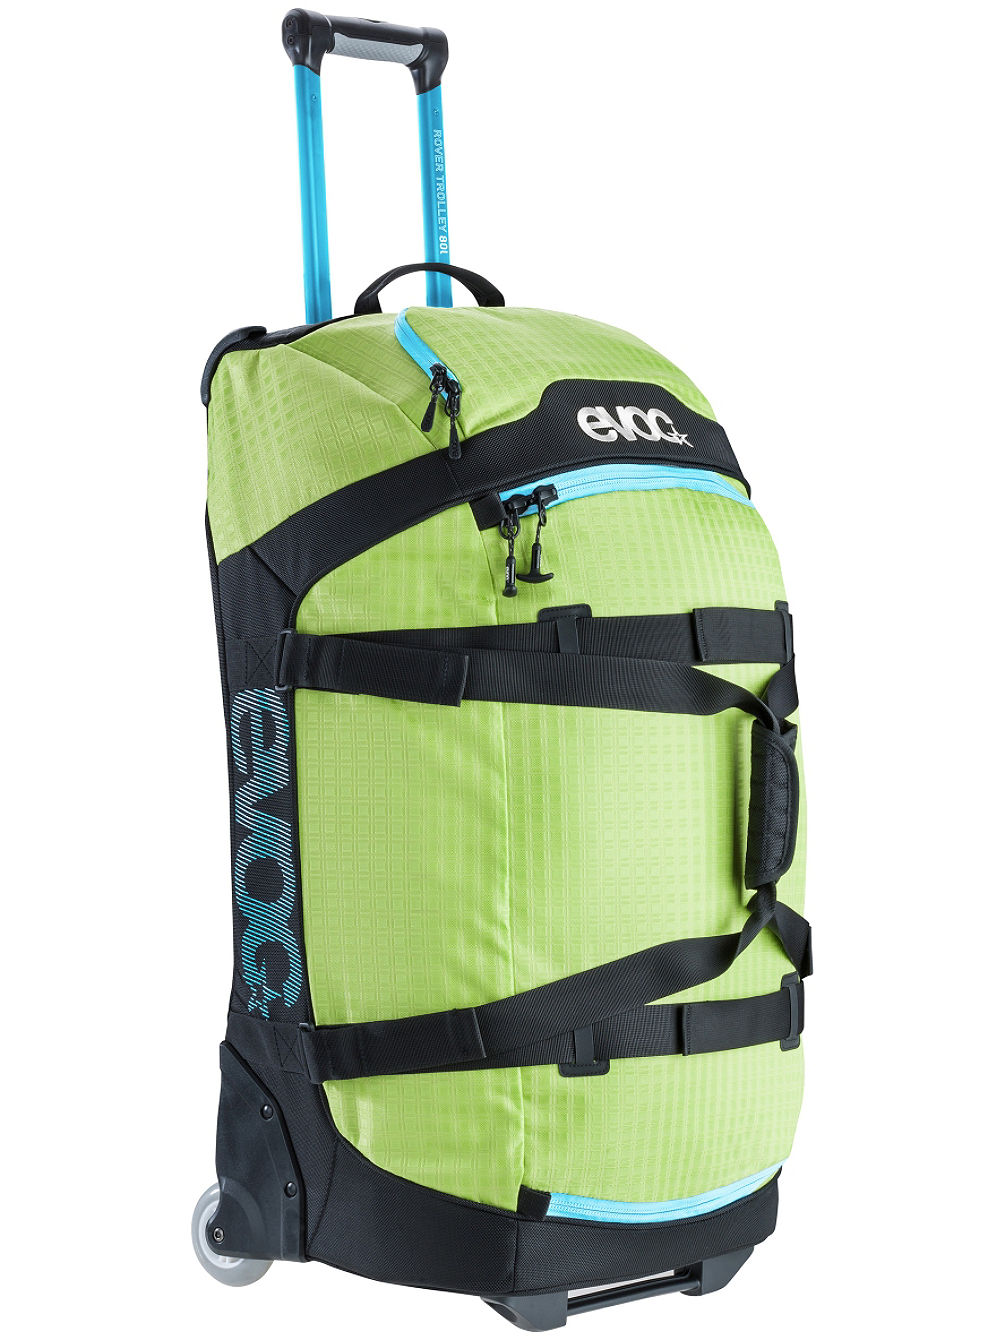 Rover Trolley 80L Travelbag